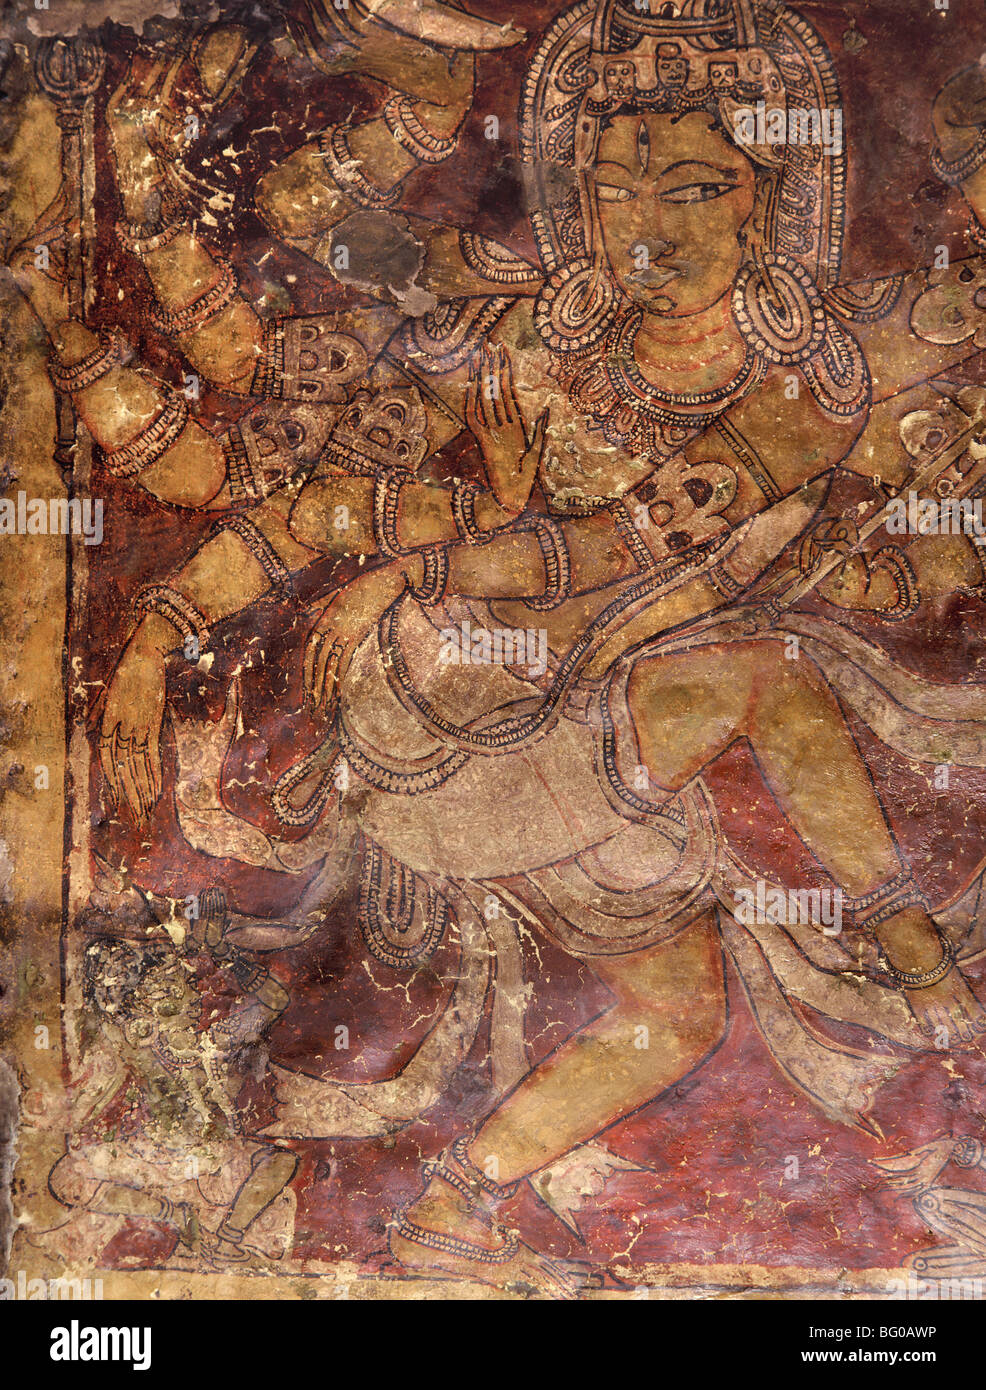 Shiva mural in the Kailasanatha Temple, dating from the 8th century AD, Ellora, Maharashtra, India, Asia Stock Photo